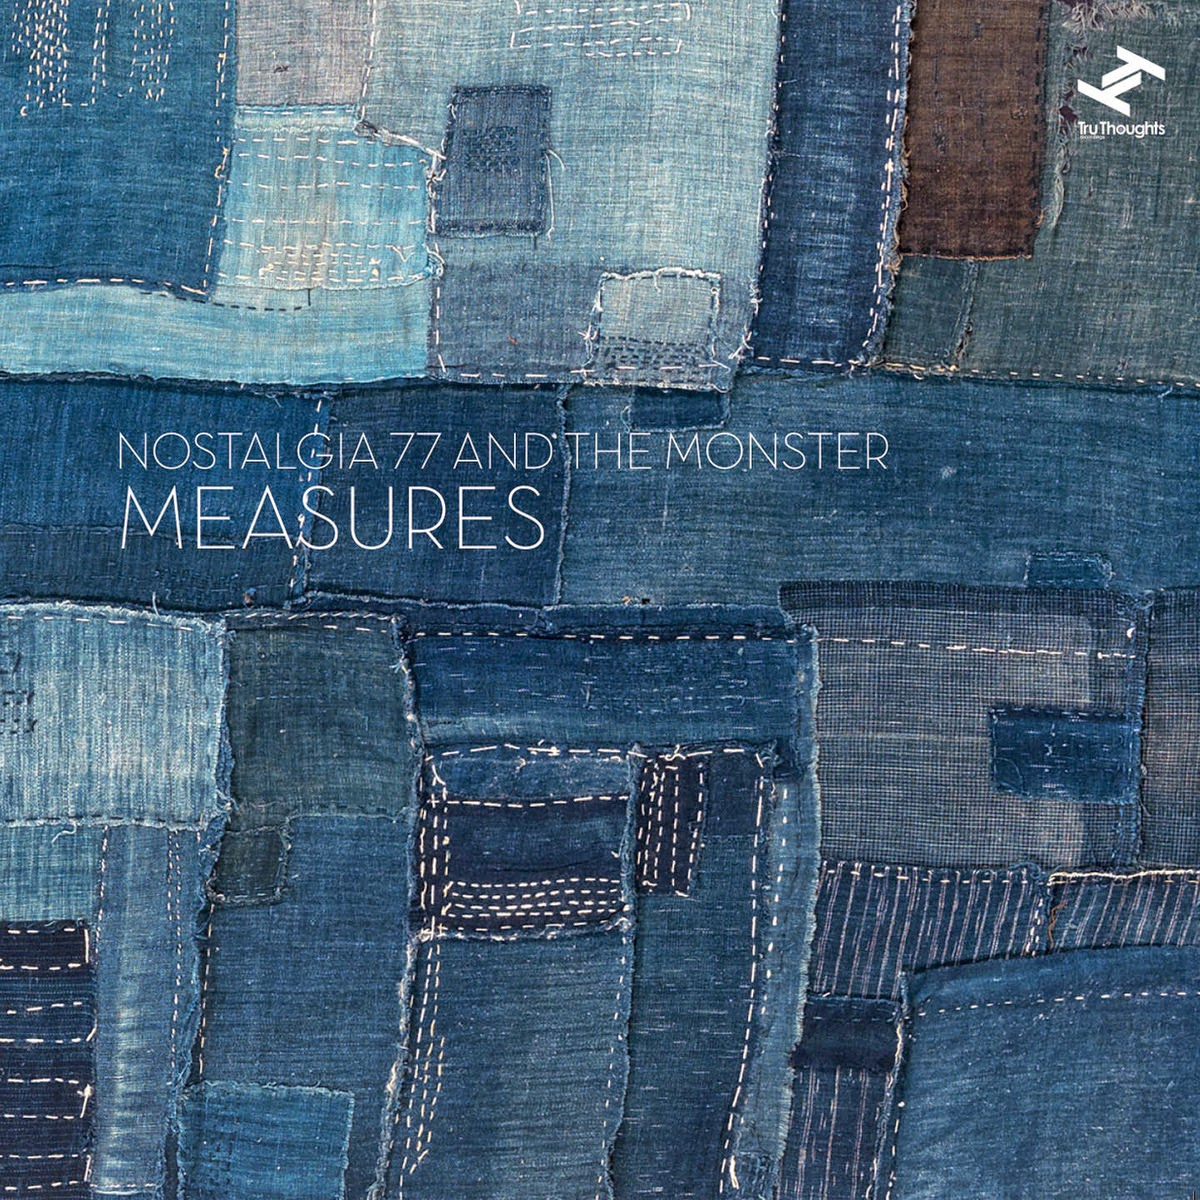 http://www.d4am.net/2014/12/nostalgia-77-and-monster-measures.html